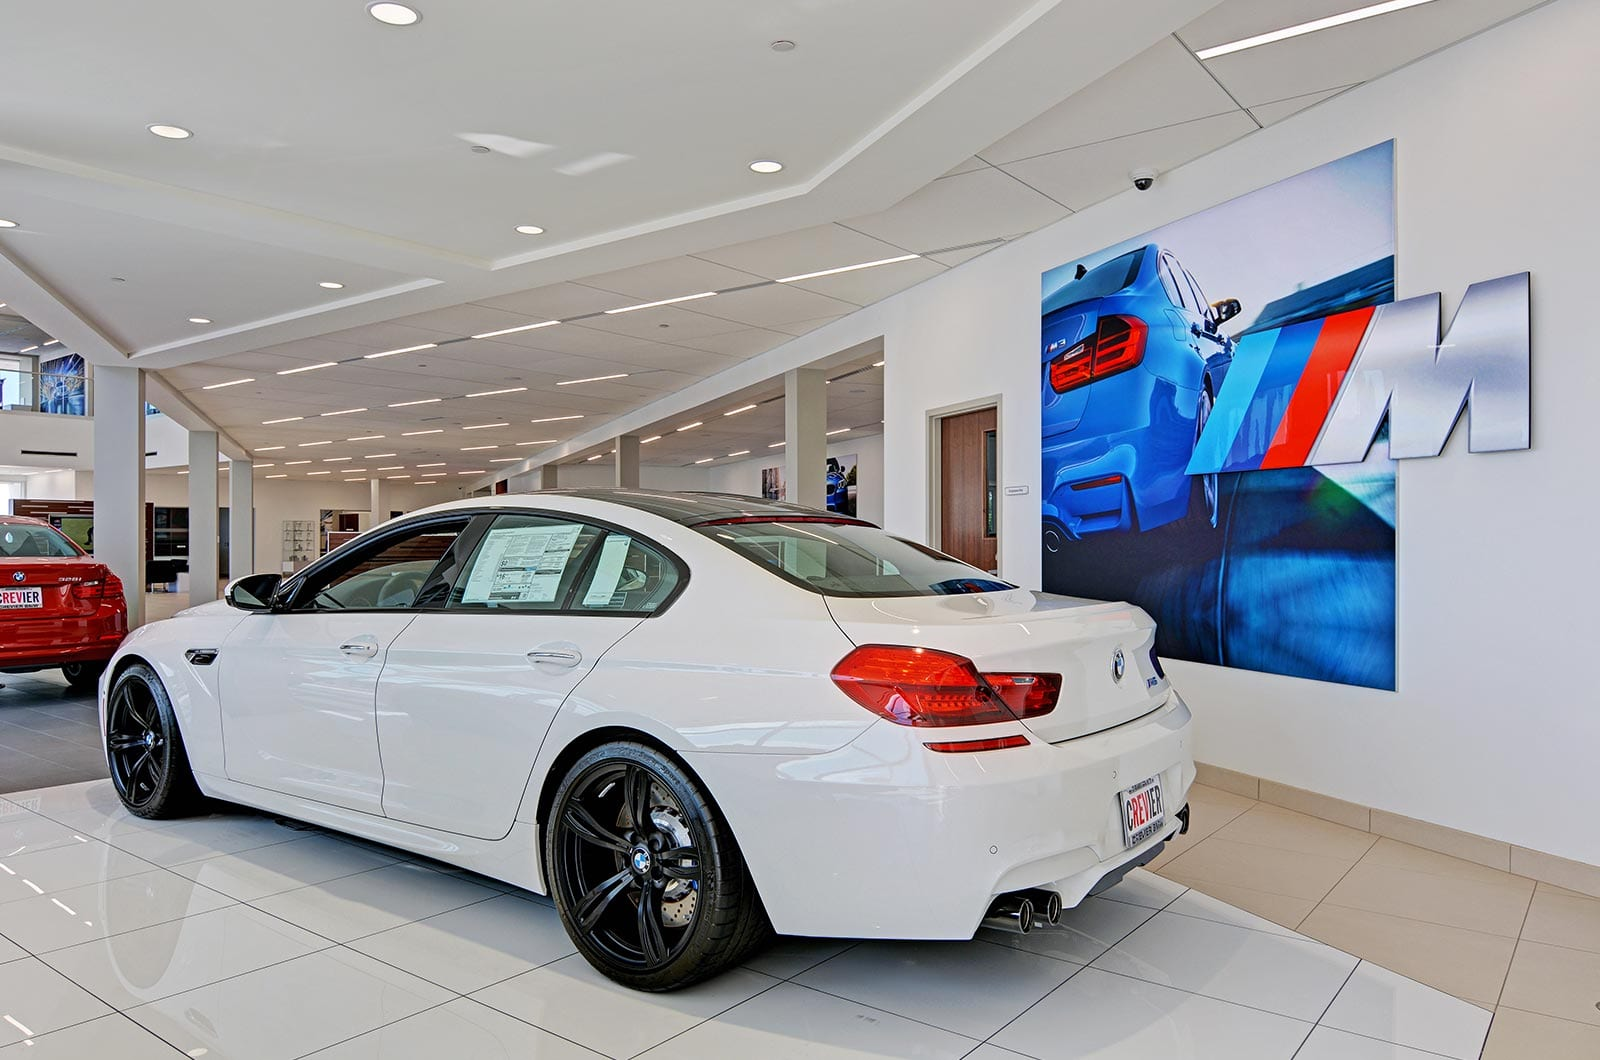 Bmw virtual tour auto dealership virtual tour for A m motors